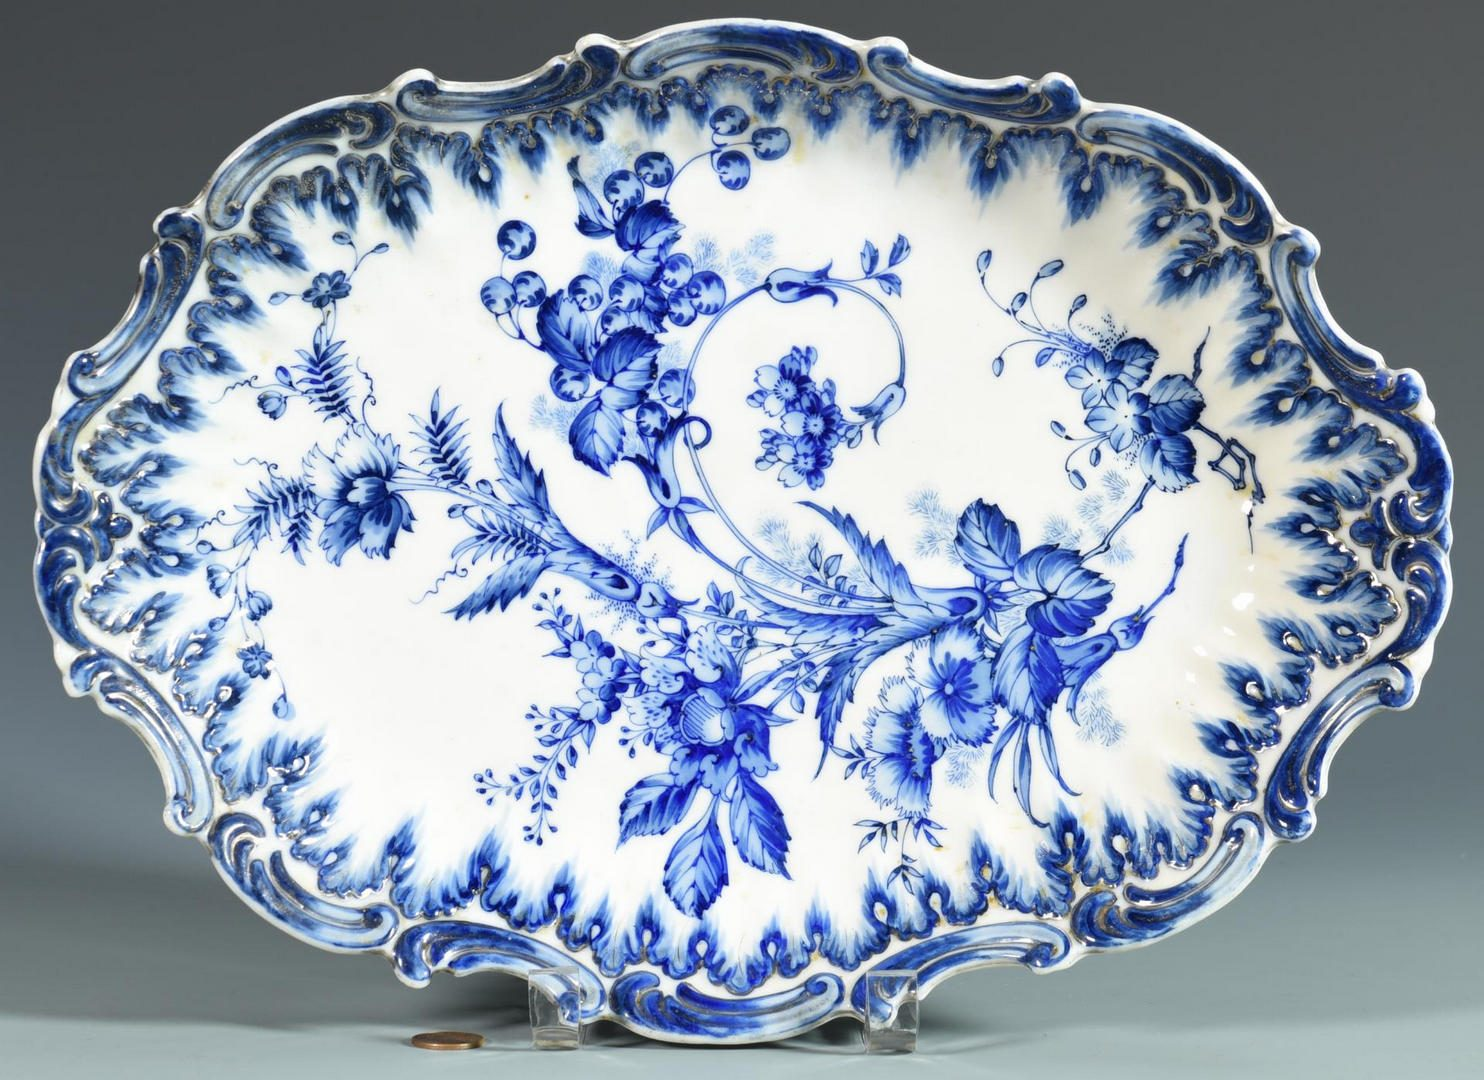 Lot 136: Blue/White Chinoiserie Dish